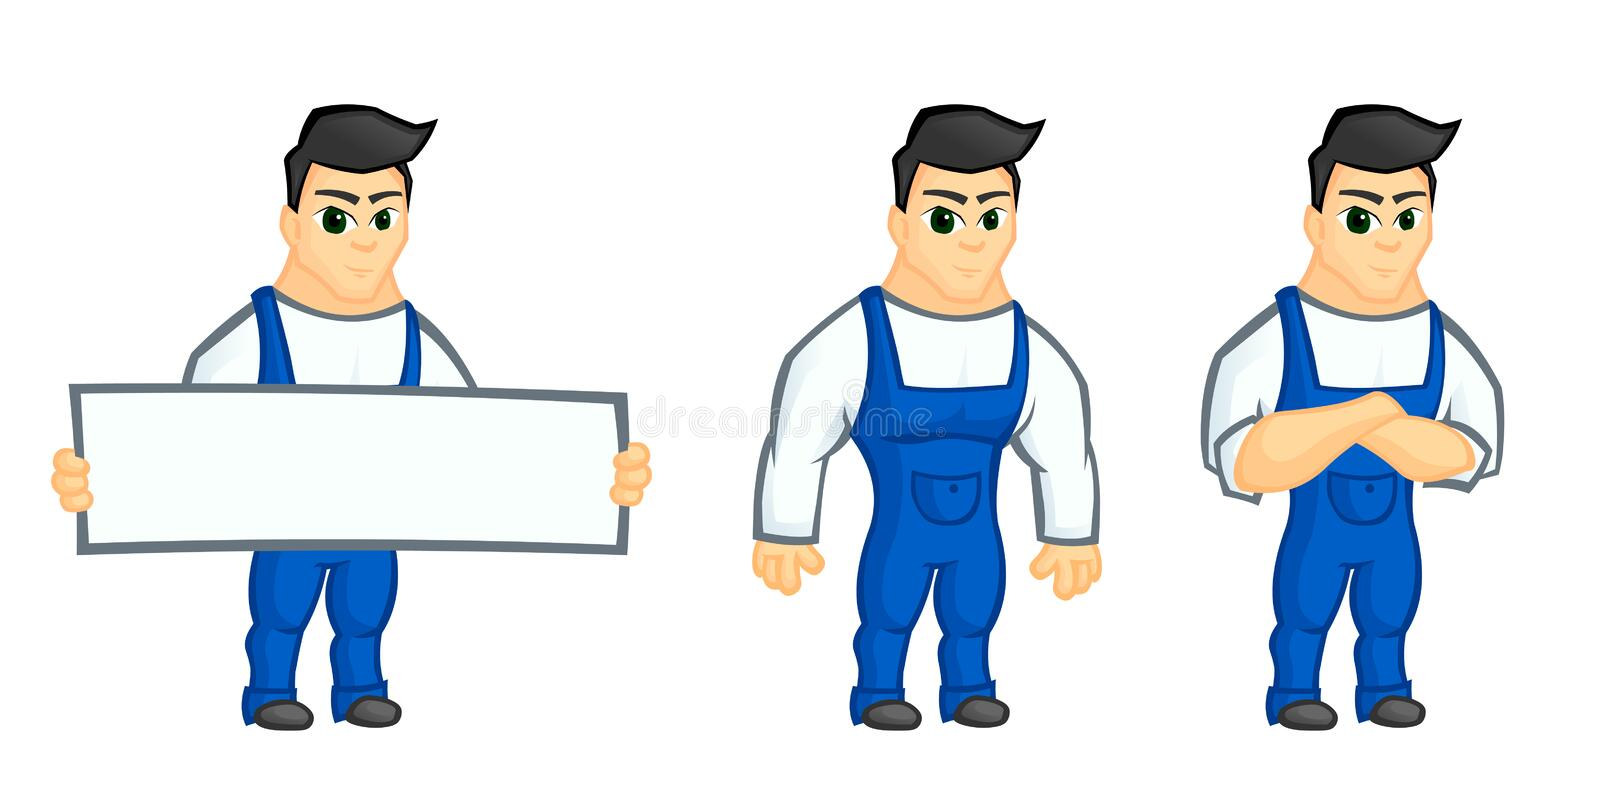 Work man mascot stock image